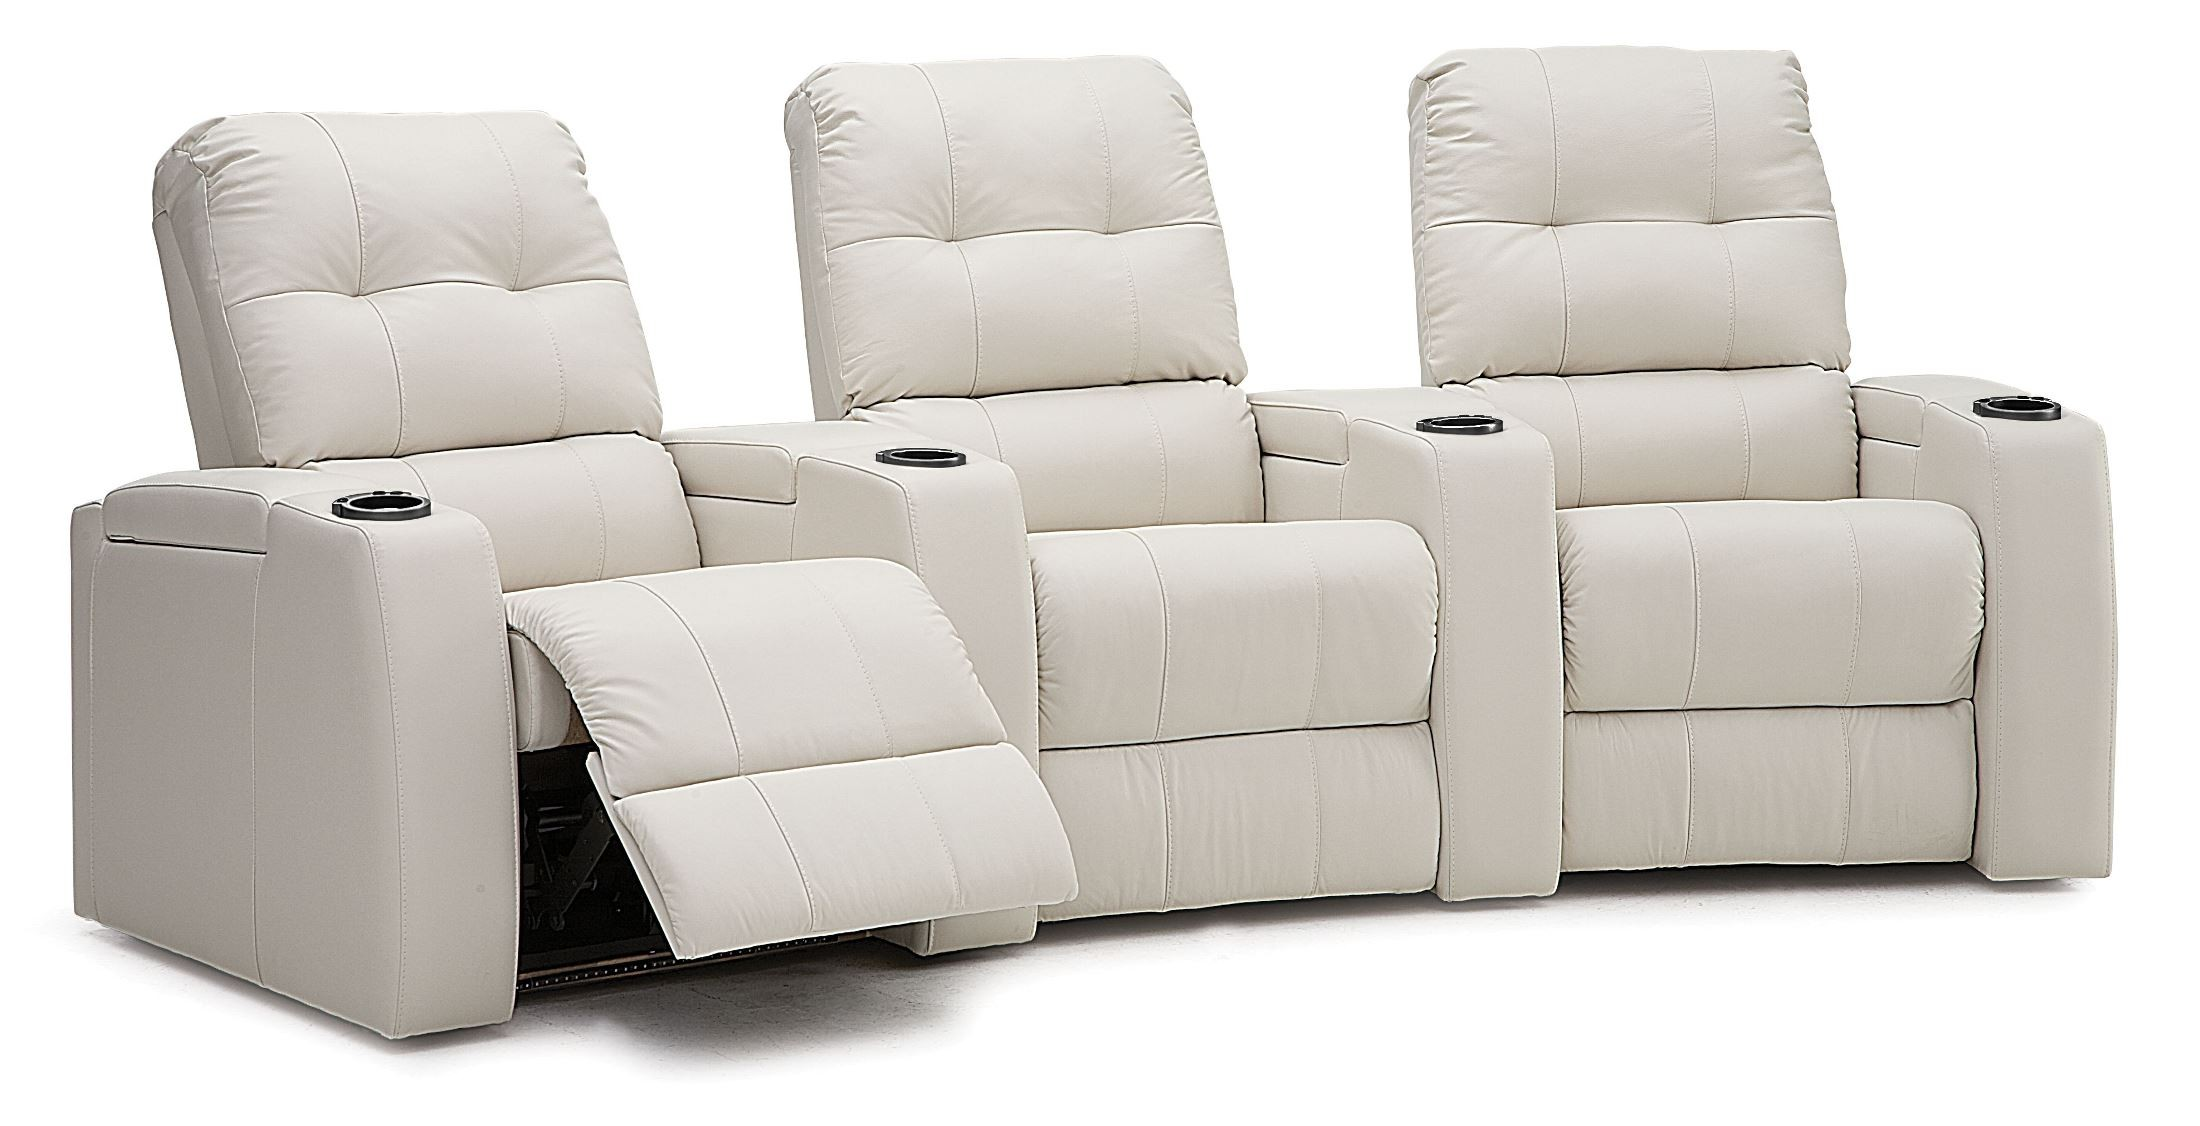 Record Bonded Leather Home Theatre Seating Psr 41400